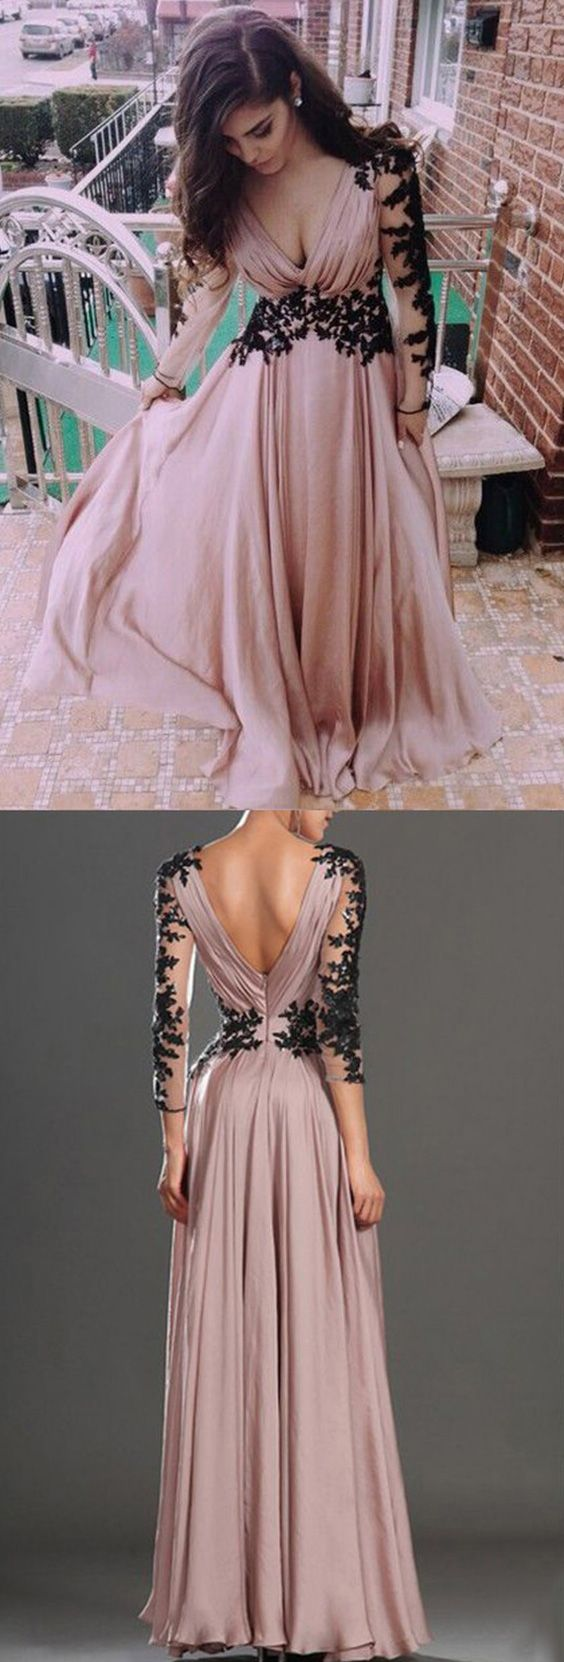 Deep V neck Prom Dress Fashion Long Sleeves Appliques Black And Pink Chiffon Prom Dress - Thumbnail 1